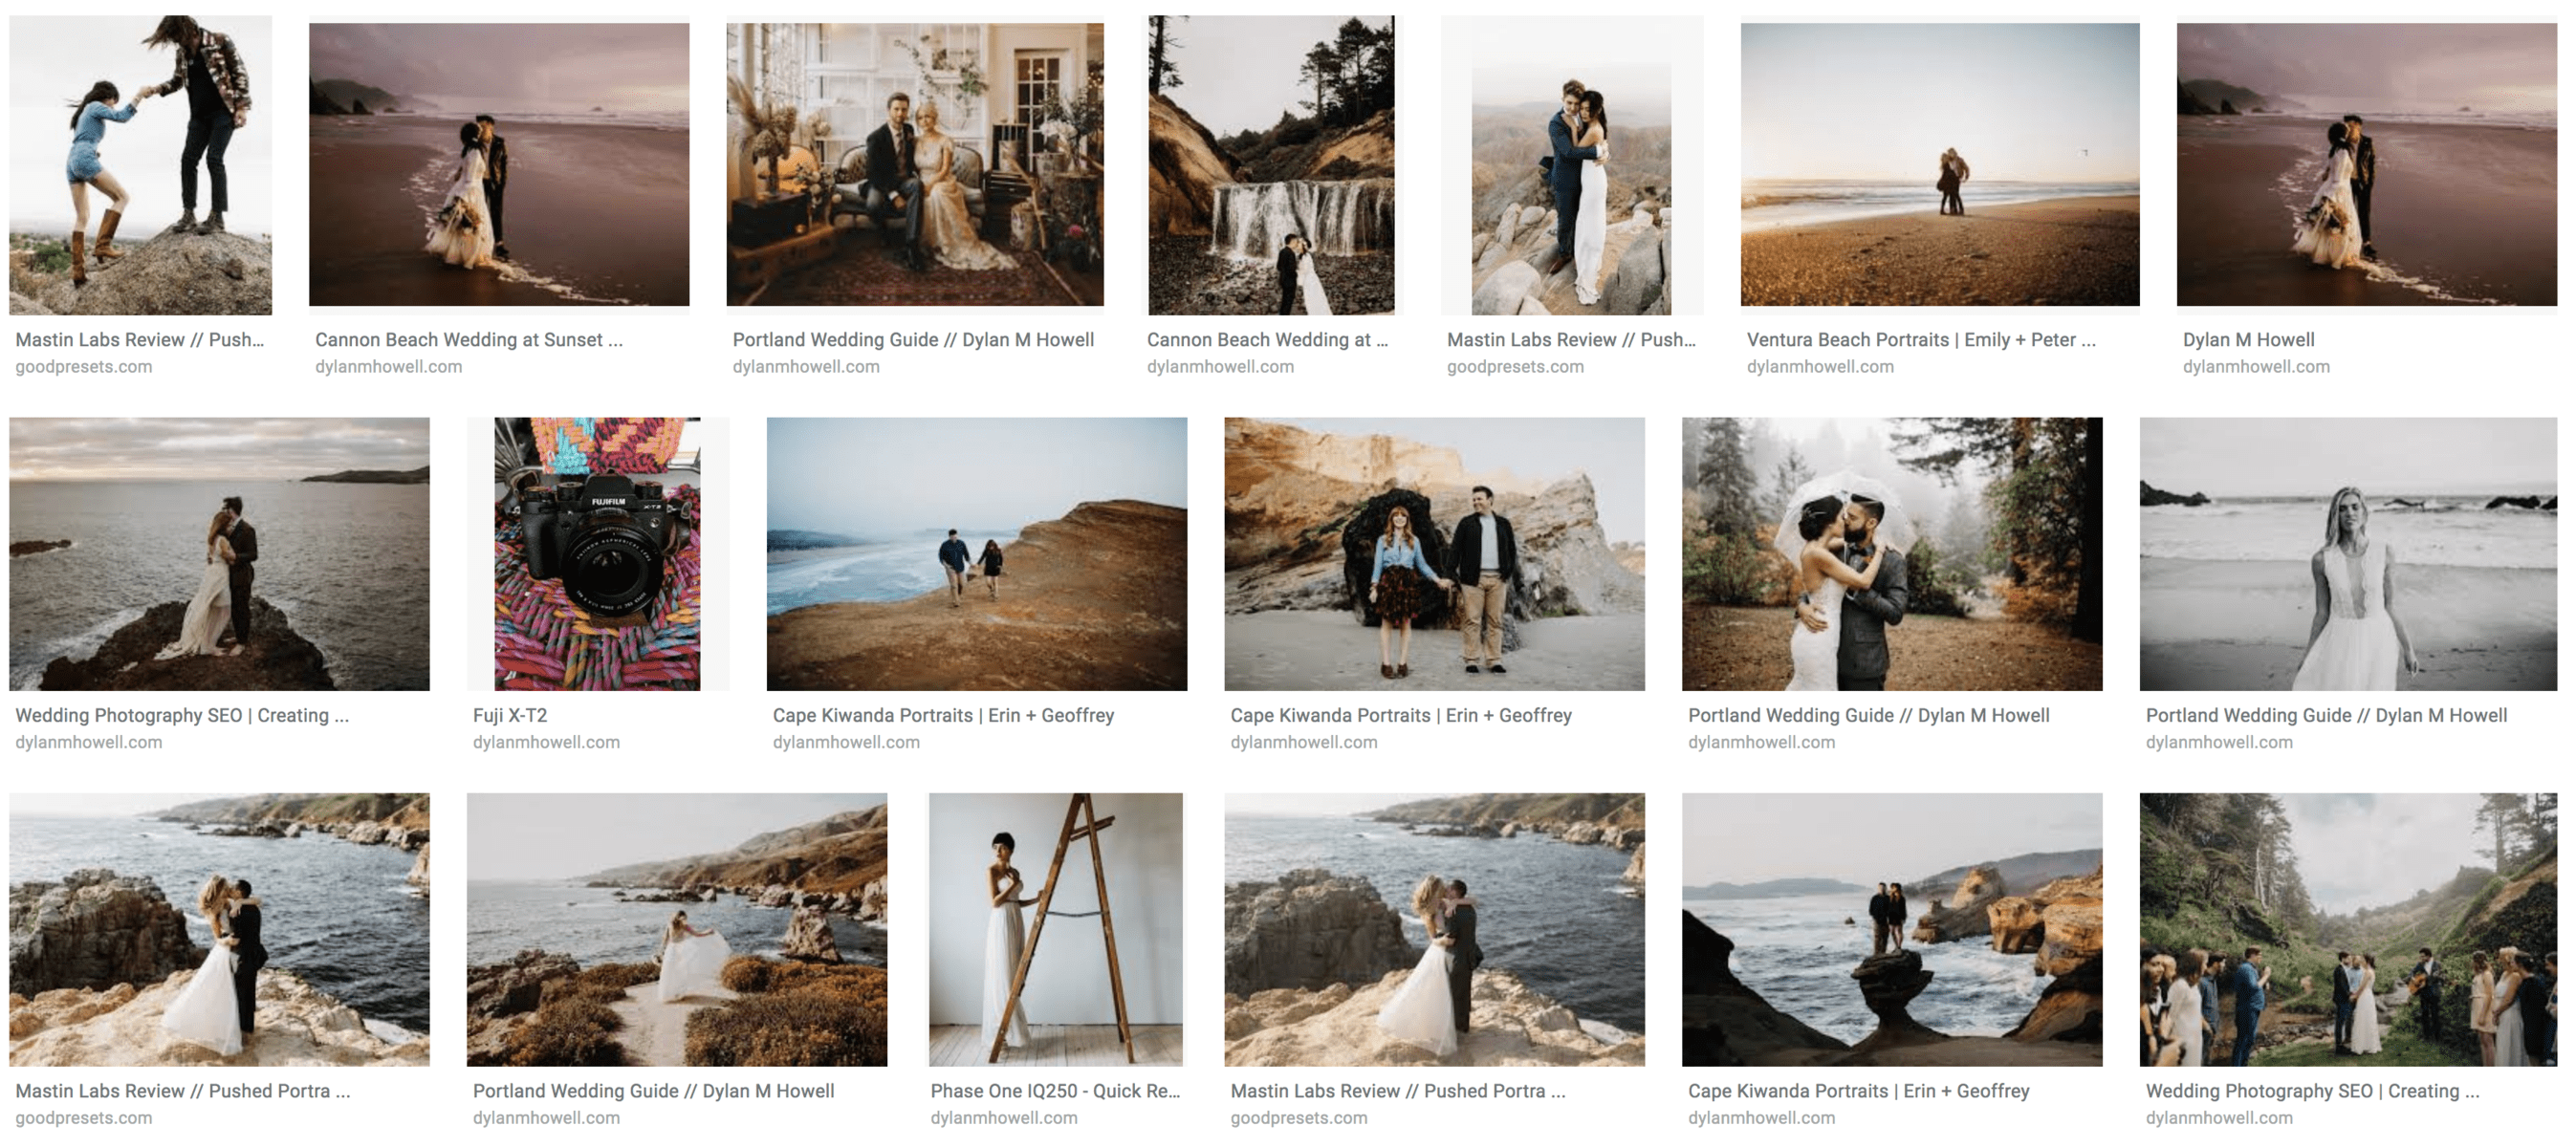 Google Updates Image Search [October 2018]